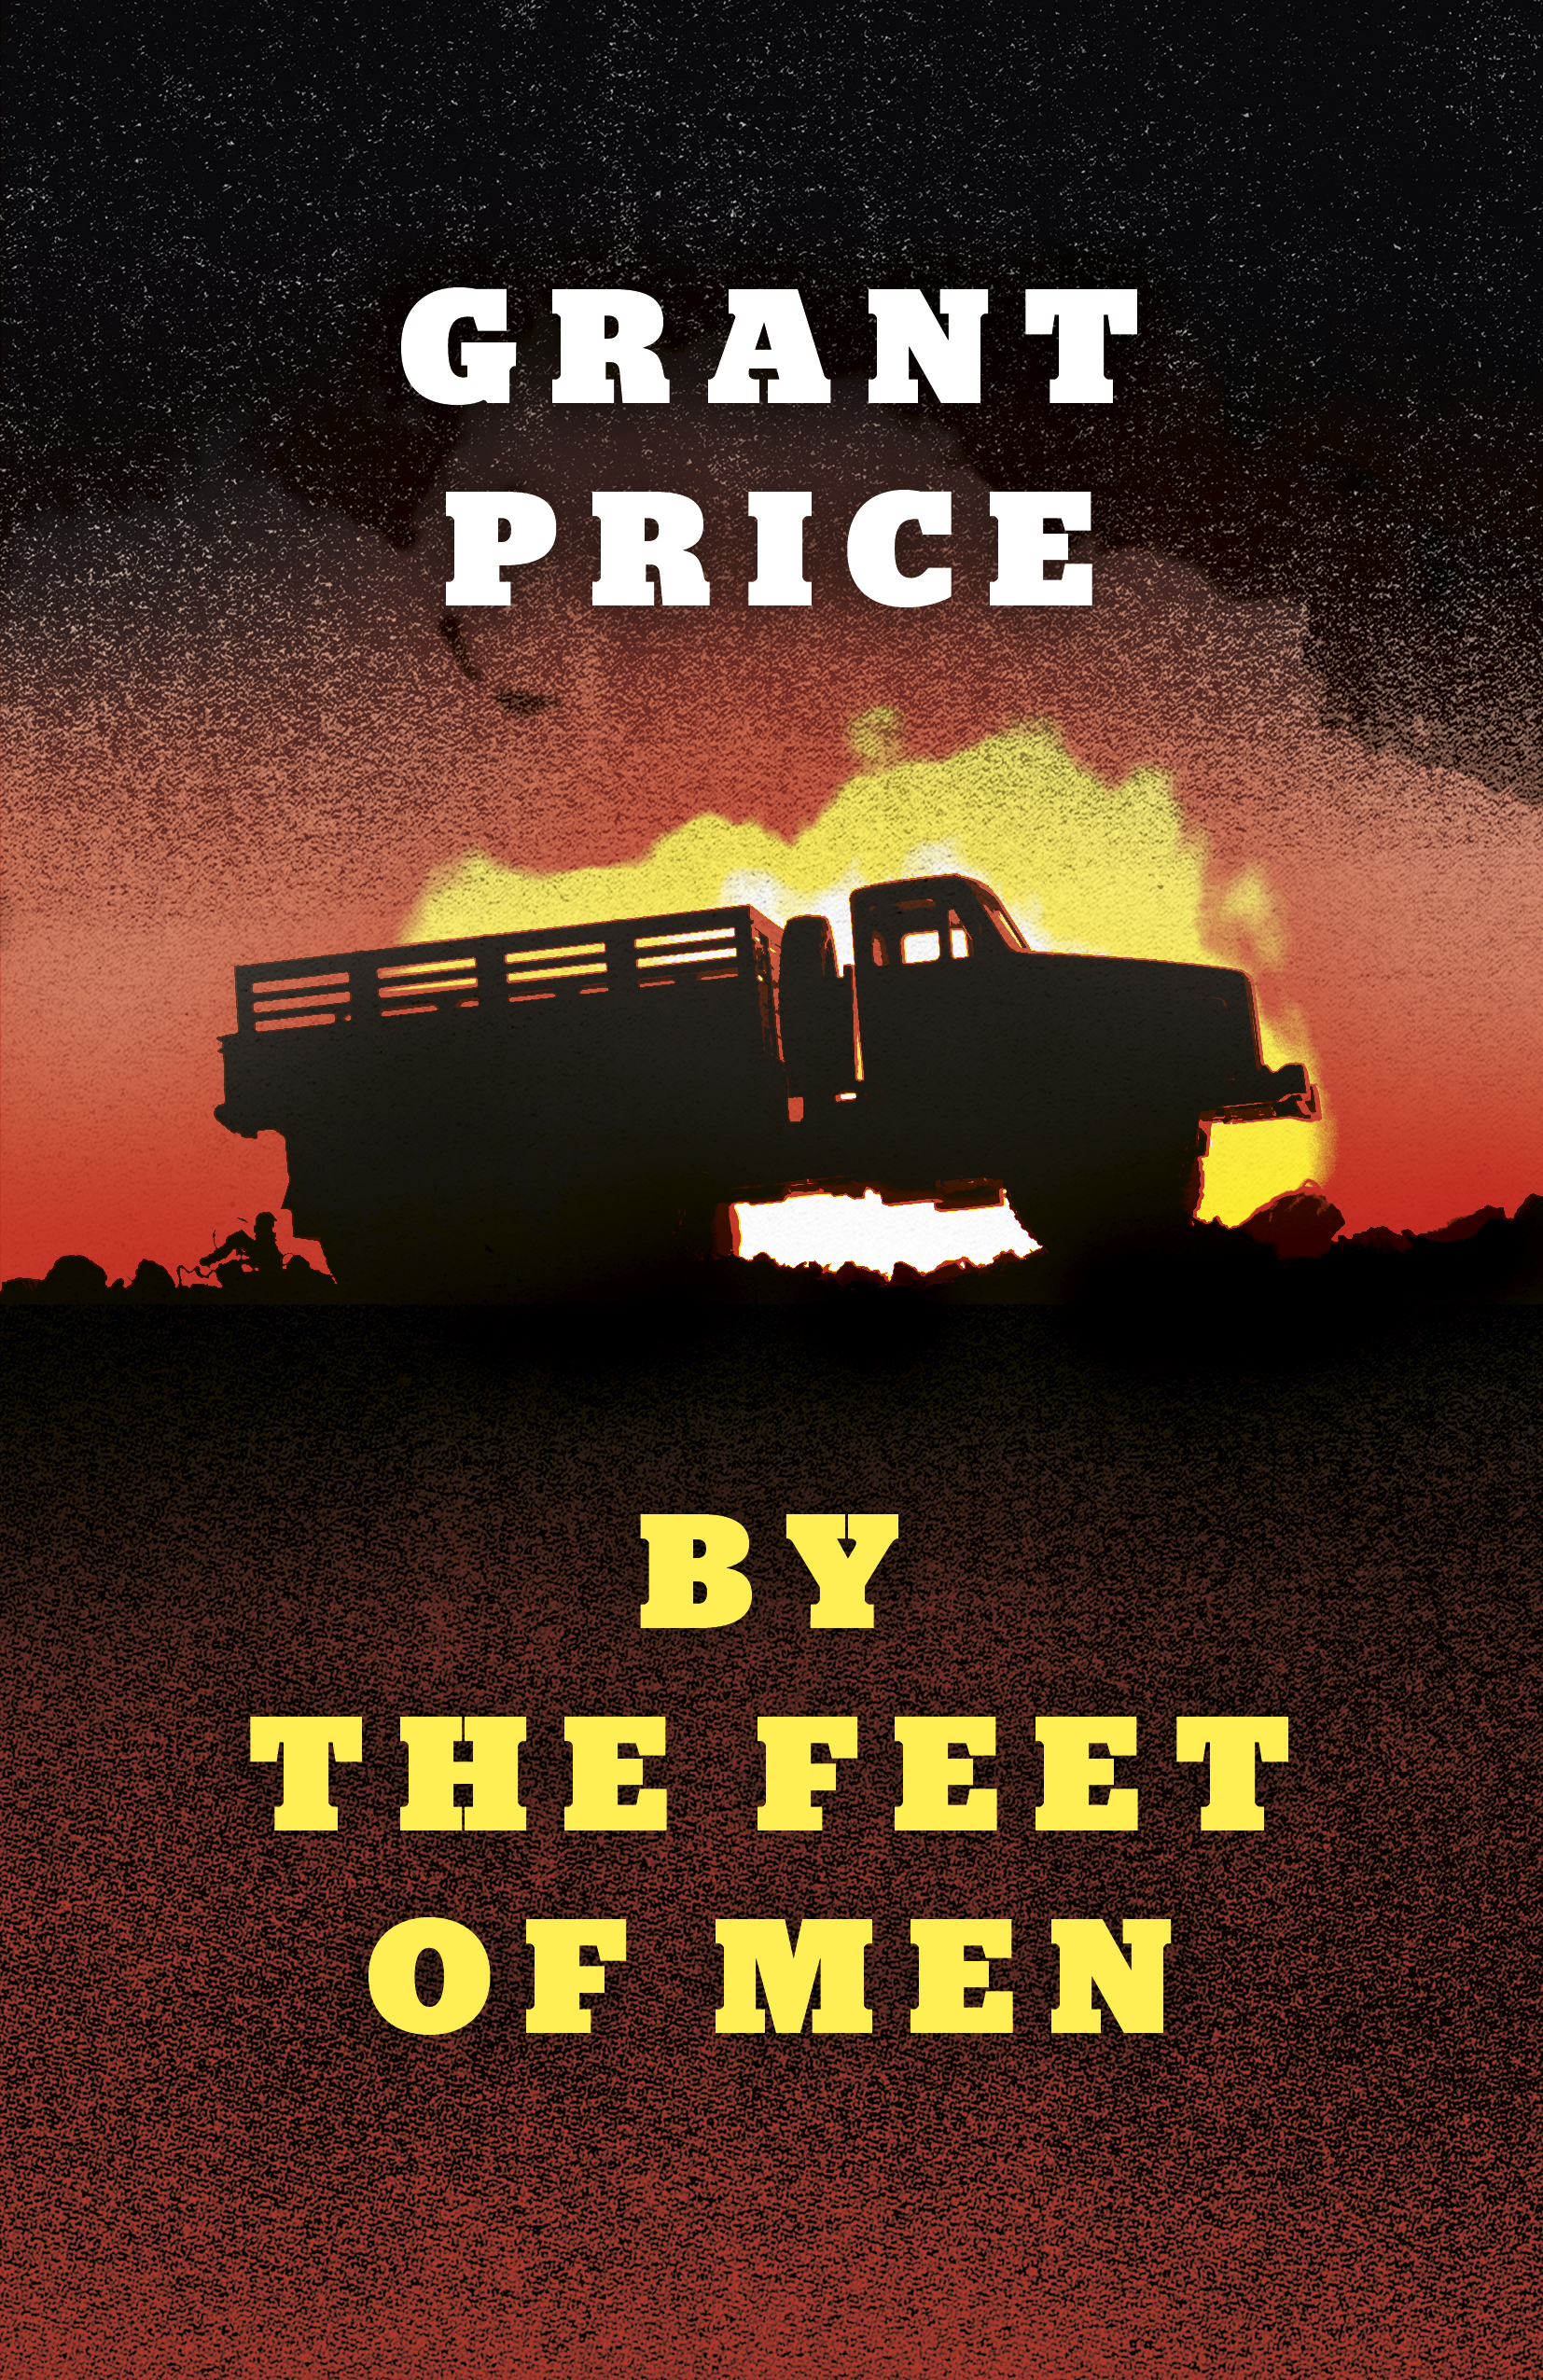 BY THE FEET OF MEN cover image